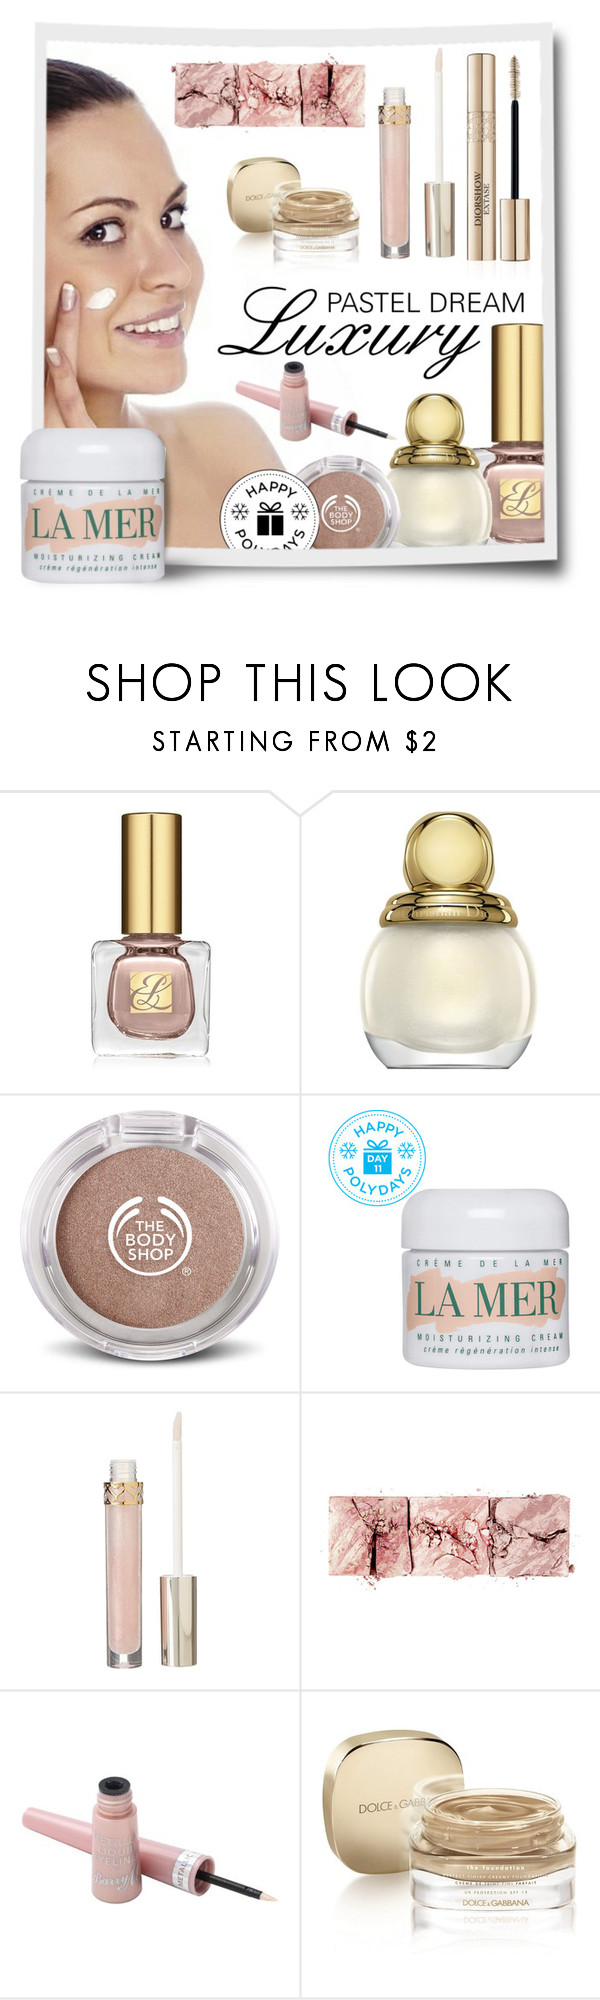 """""""Luxury Pastel Dream"""" by crapiblogabout ❤ liked on Polyvore featuring beauty, Estée Lauder, Christian Dior, The Body Shop, La Mer, Stila, Hourglass Cosmetics, Barry M, Dolce&Gabbana and makeup"""